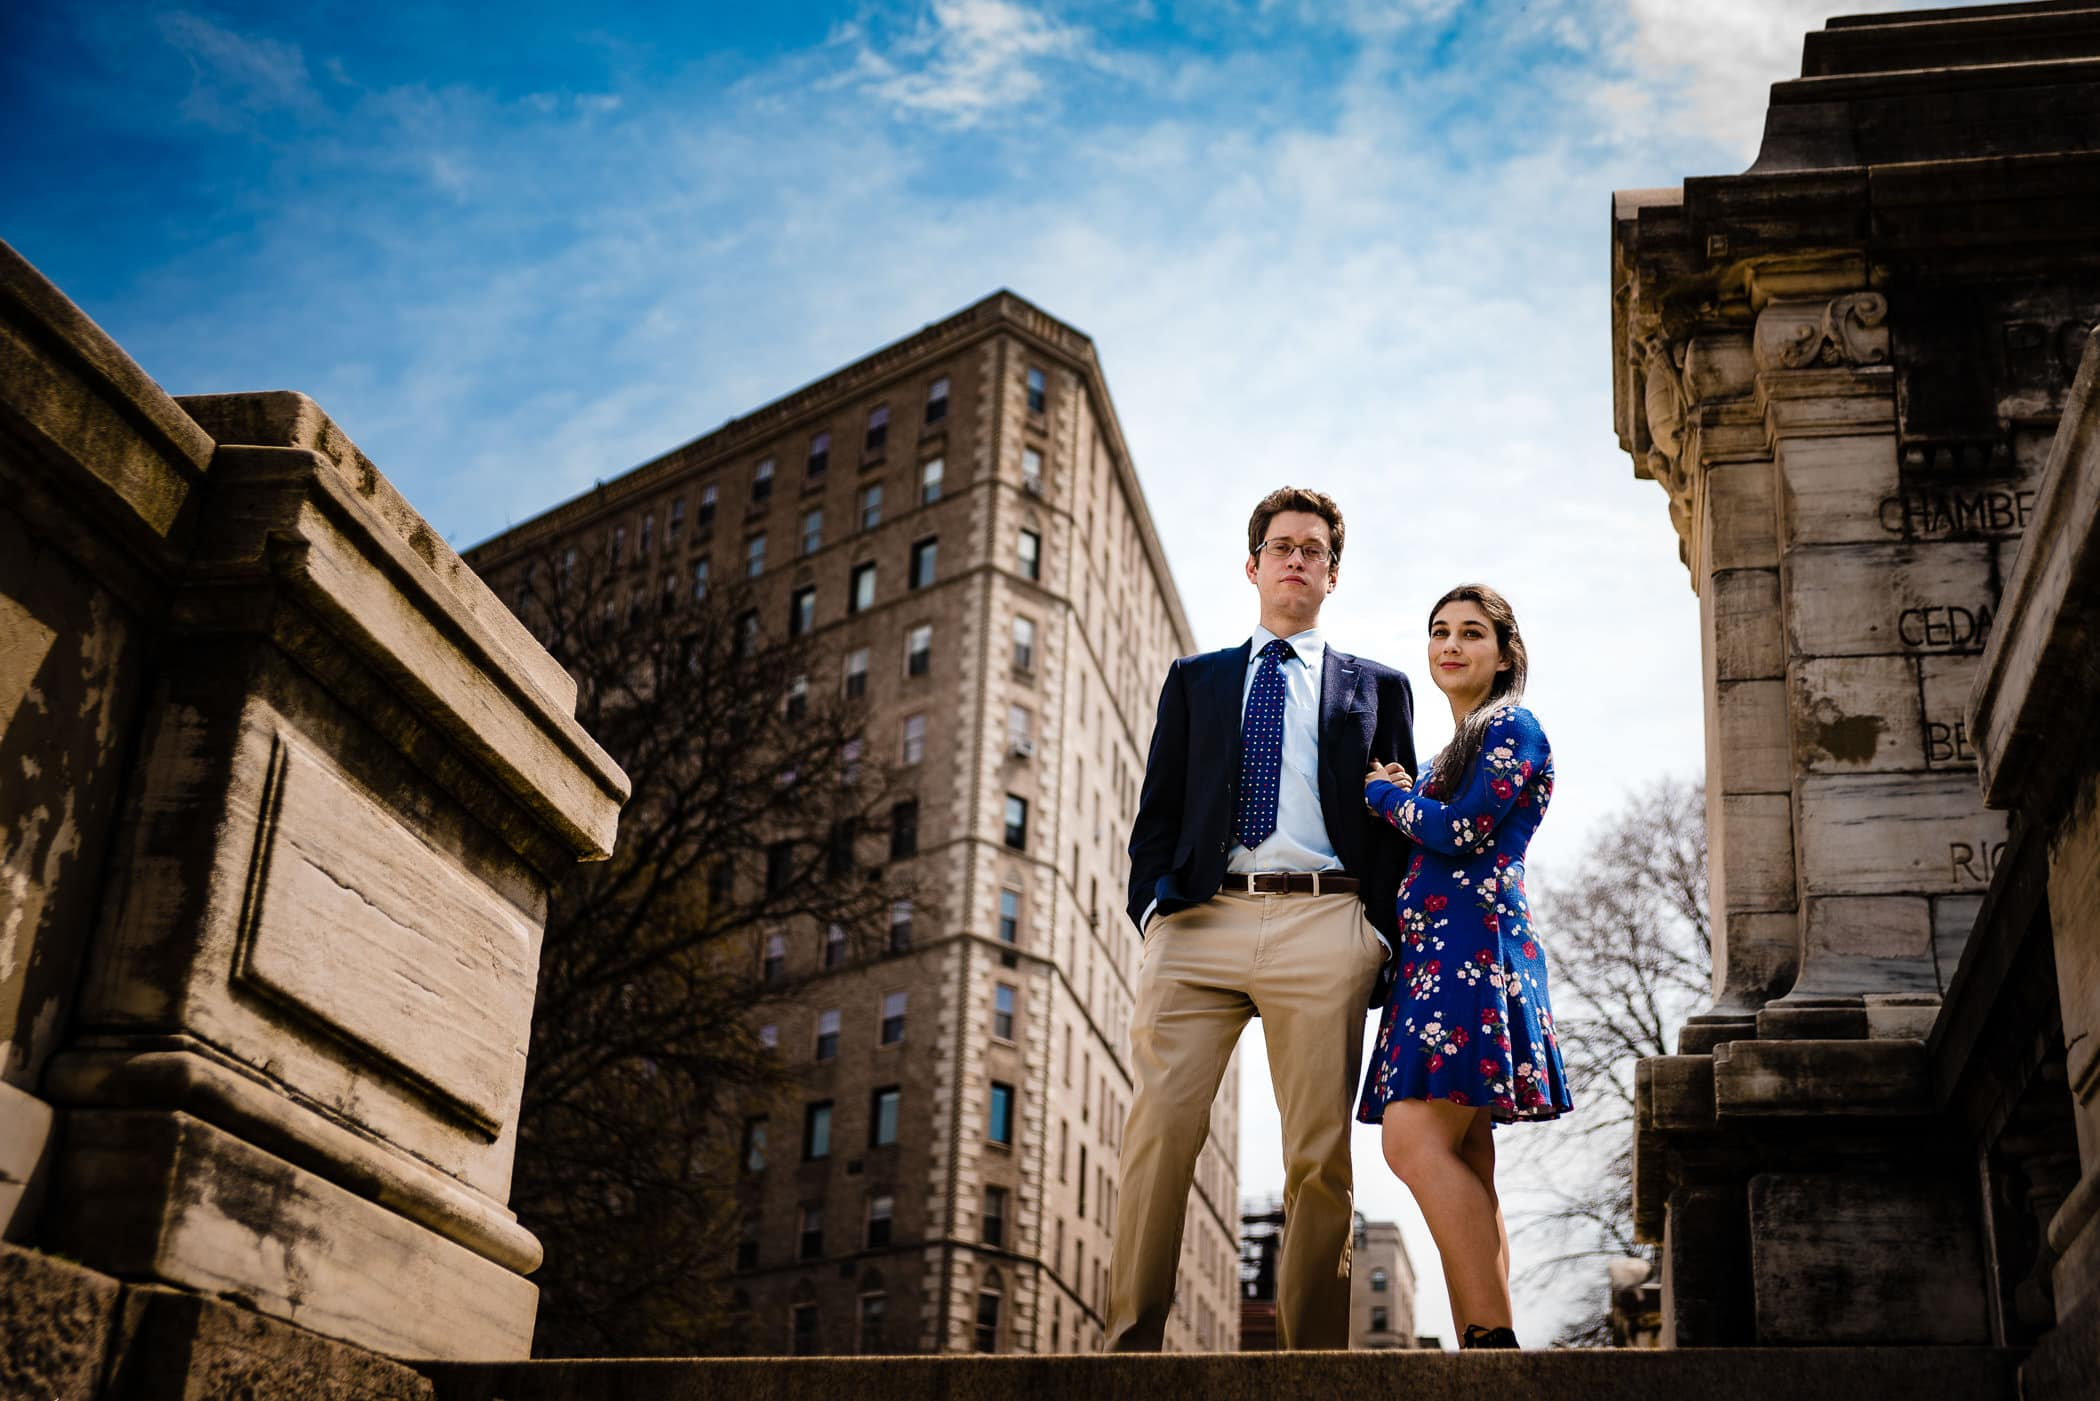 riverside-park-nyc-engagement-photos-cohen-0007